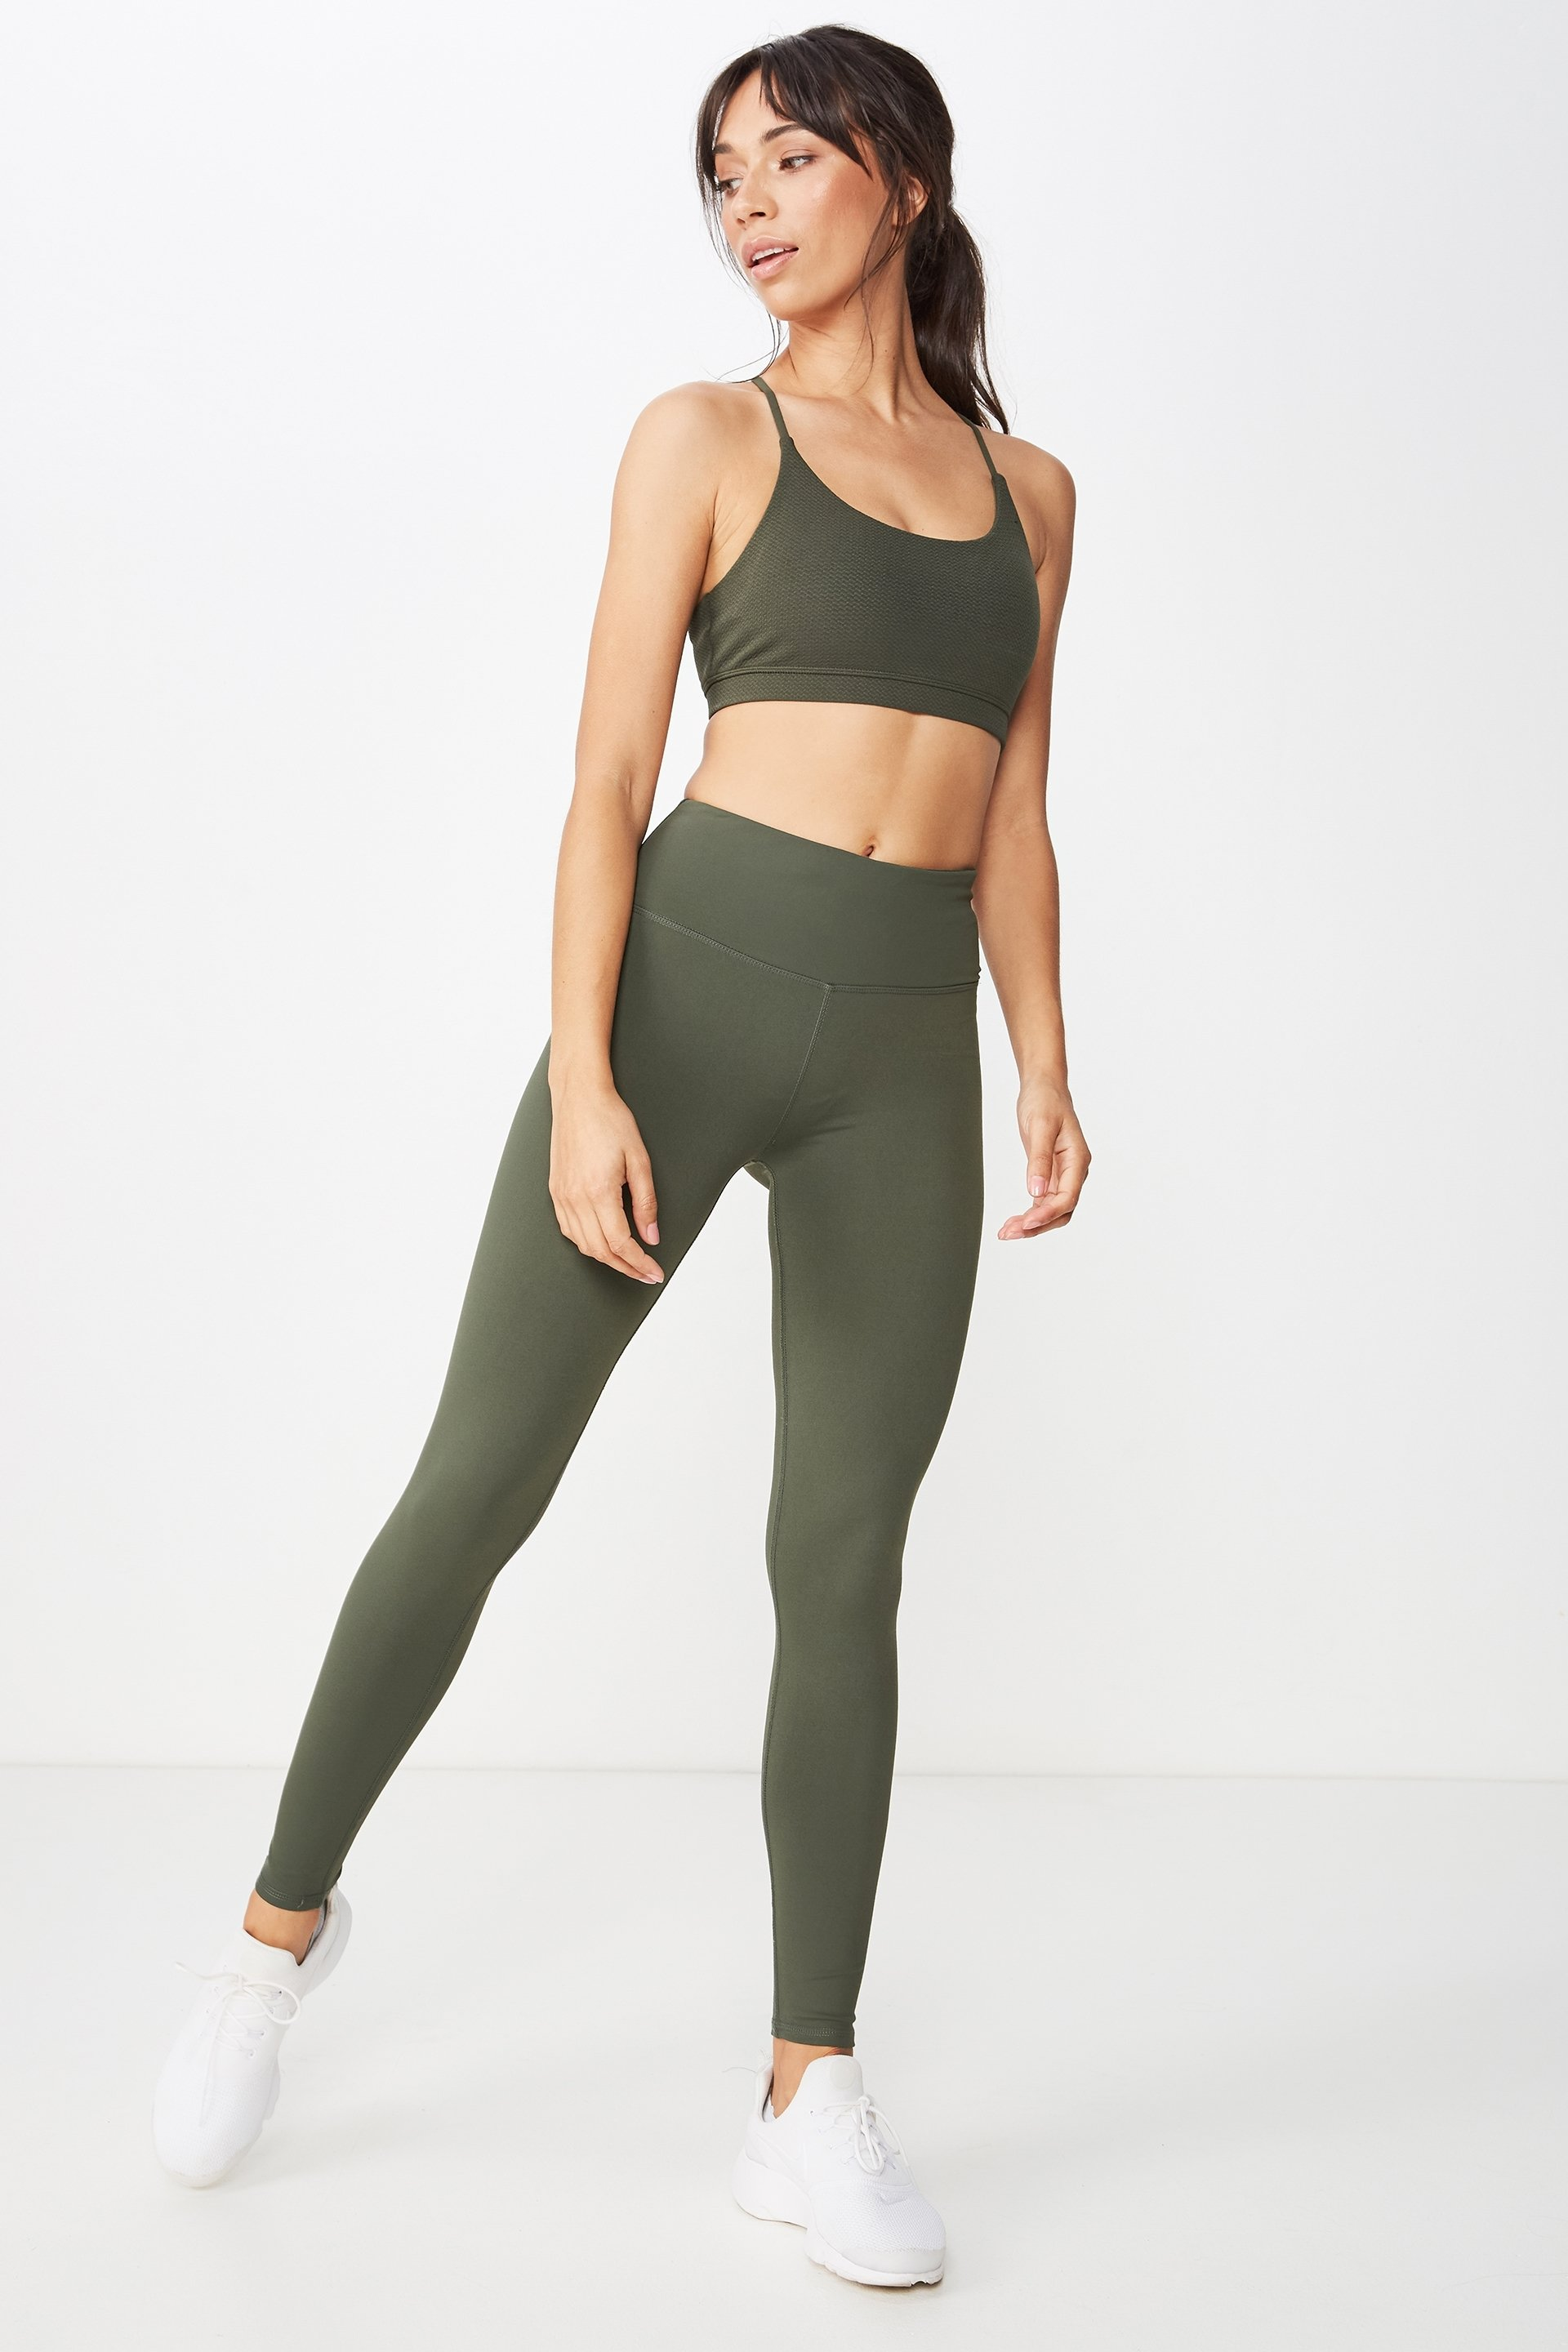 Our favourite workout buddy, the Active Core Tight has become one of our best-selling active tights. No frills - simply a full length, wide stretch, double layered waistband and moisture wicking fabric for maximum comfort when you workout. - Firmly hugs the body - High waist - Full length - Double layer wide stretch fabric waistband - Waistband coin pocket - Moisture wicking fabric - Flatlocked stitching SOLID: 88% POLYAMIDE / 12% ELASTANE MARLE: 44% POLYAMIDE / 44% POLYESTER / 12% ELASTANE MODEL WEARS SIZE: SMALL - AU 10 US 6 EUR 38